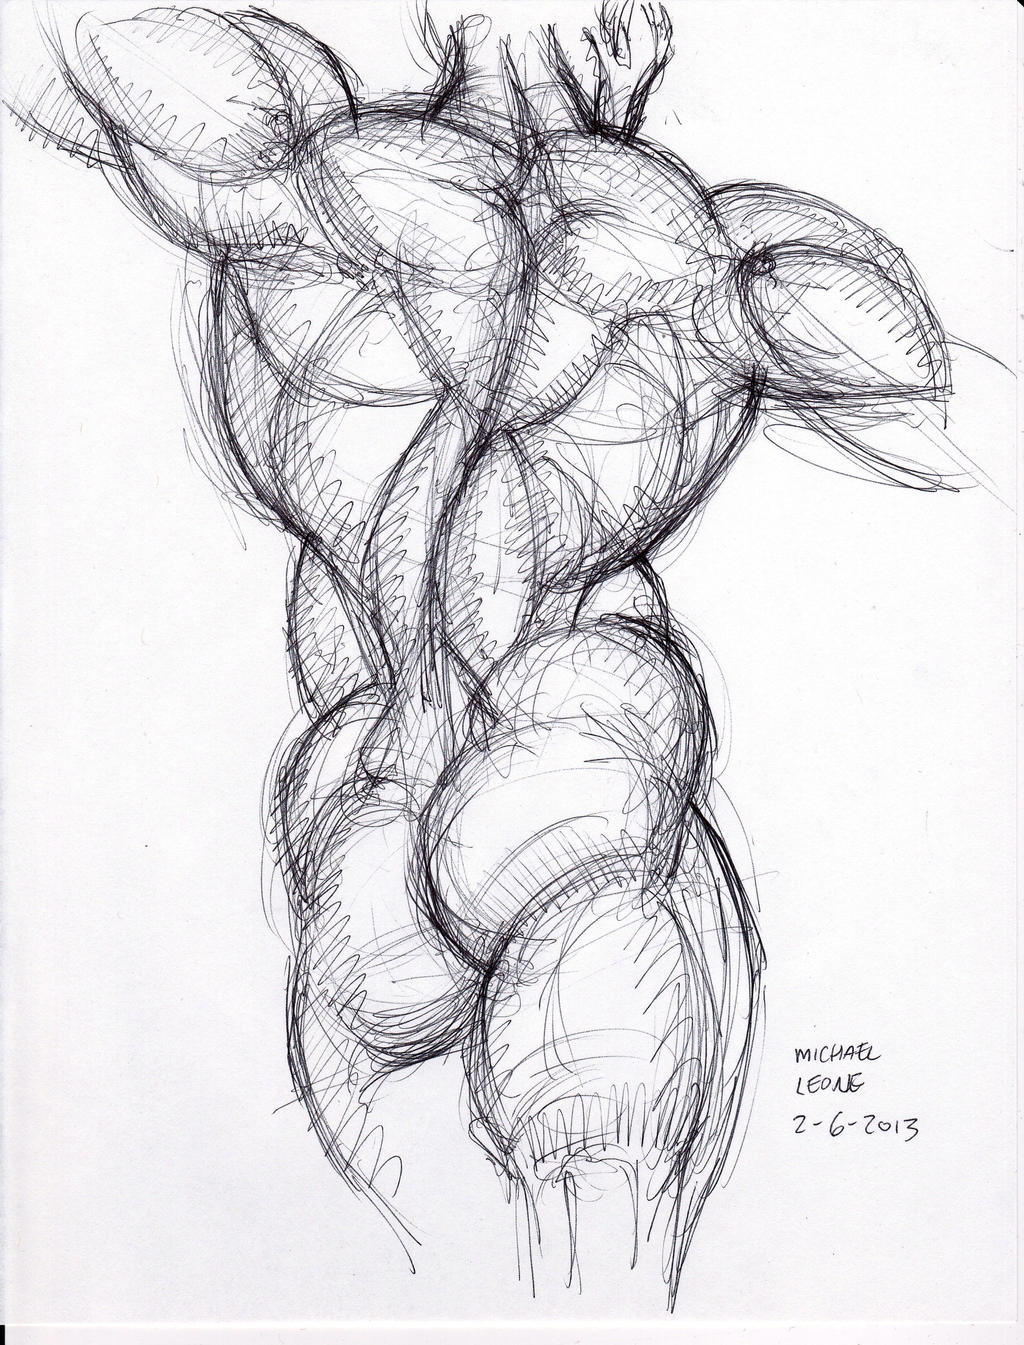 Hogarth sketch 2-6-2013 b by myconius on DeviantArt